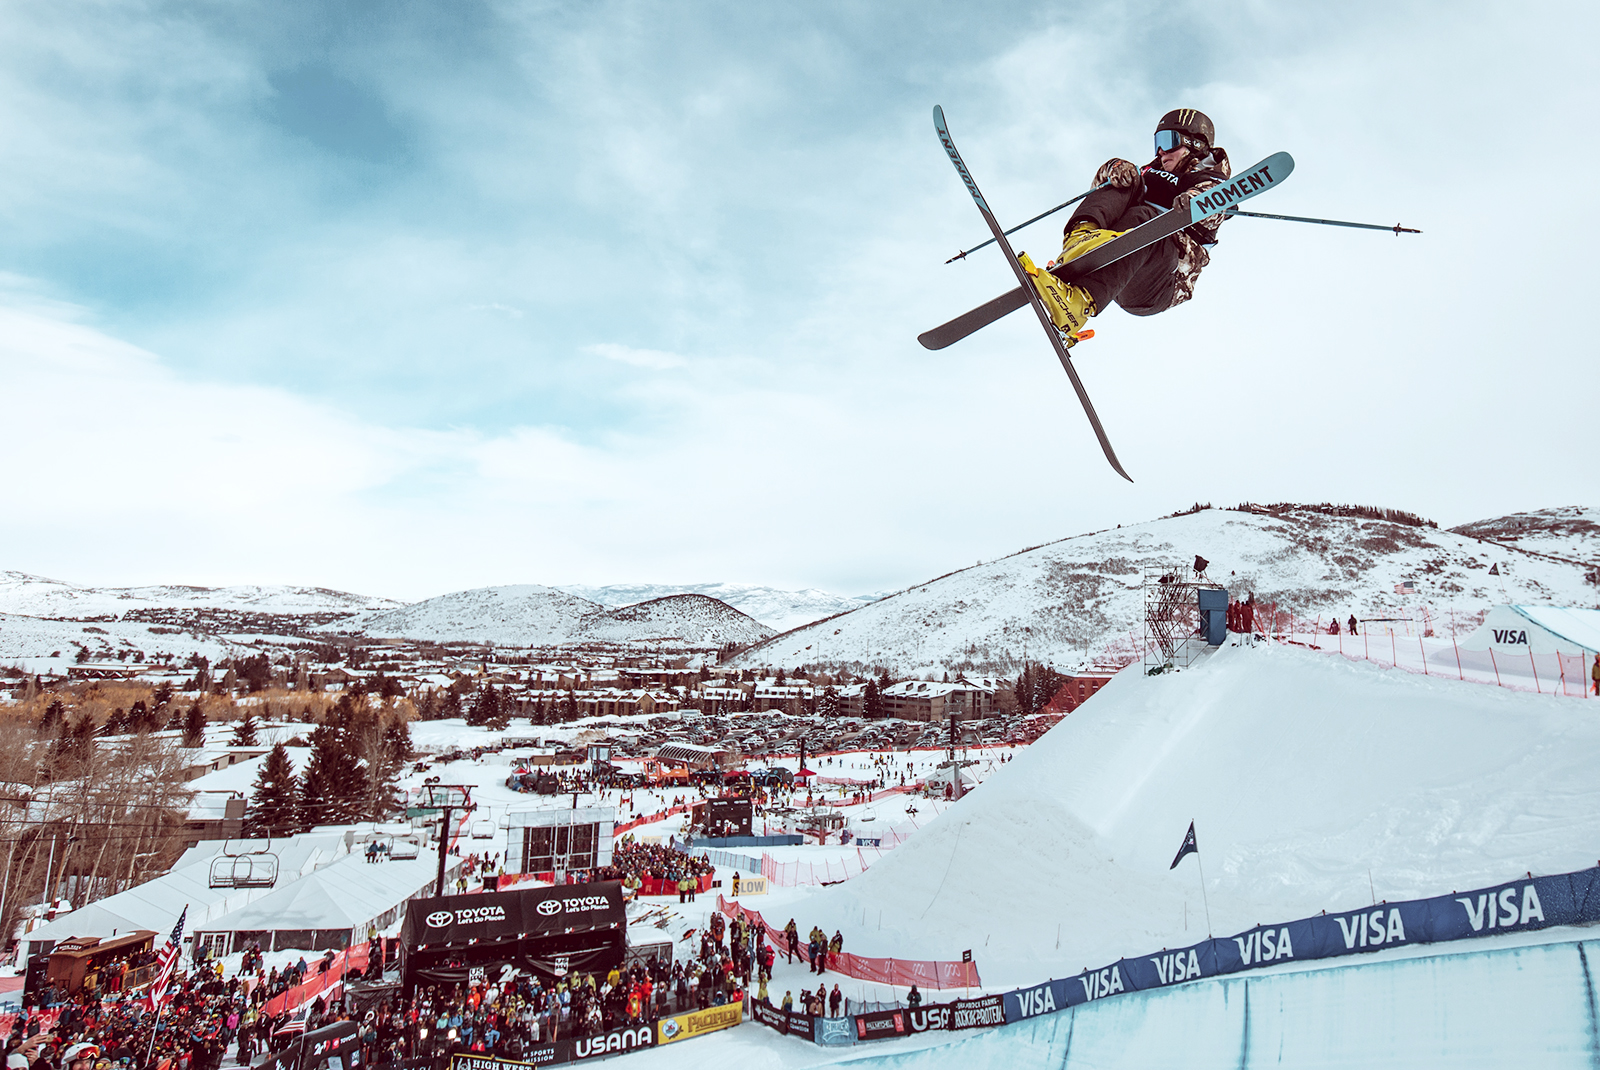 Freestyle Skiier Launching in the Air at the FIS World Cup in Park City Utah